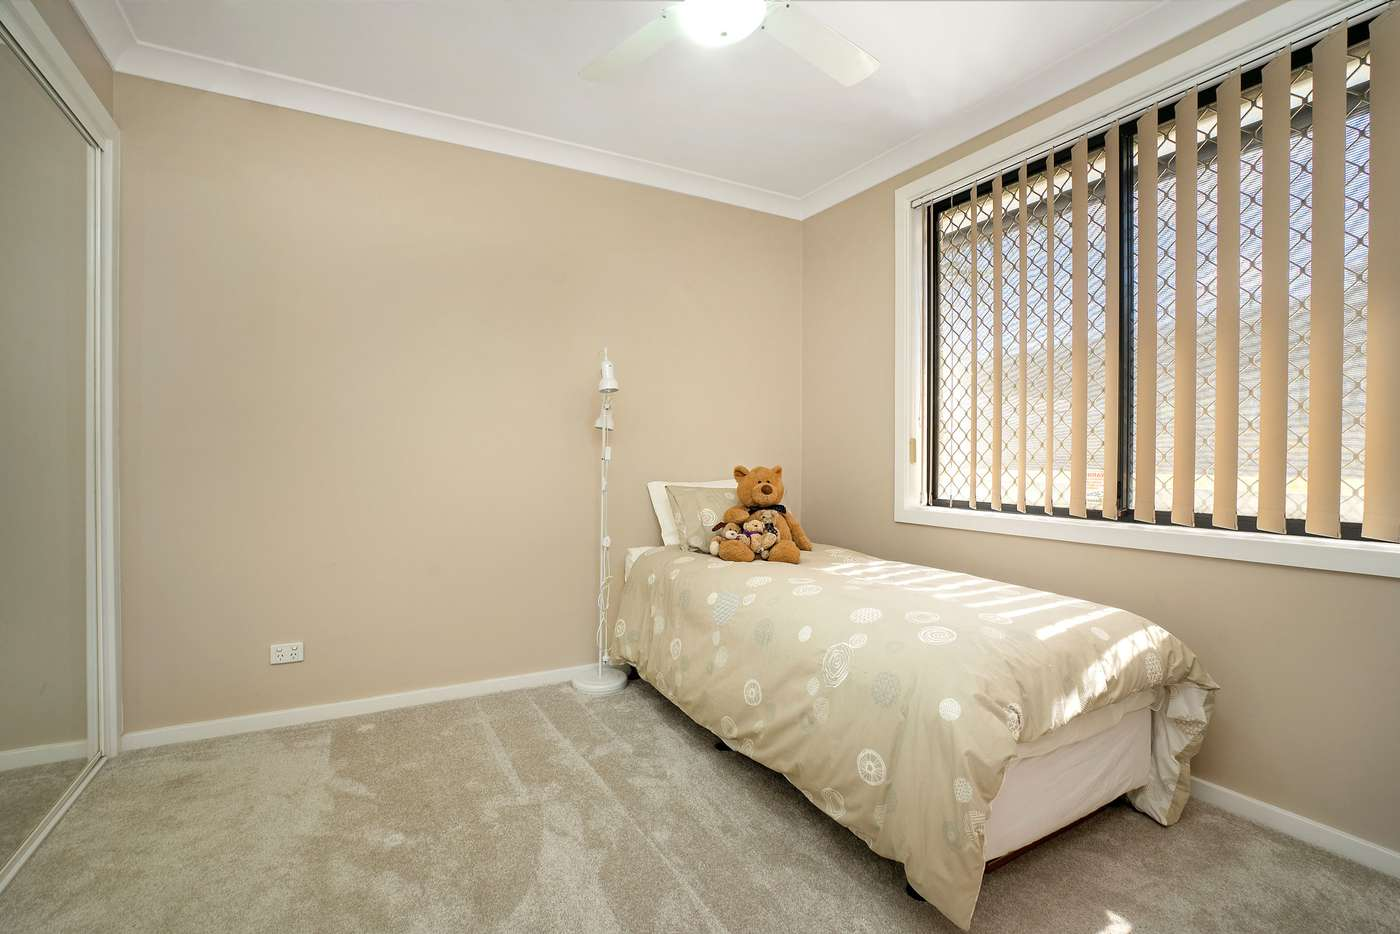 Sixth view of Homely villa listing, 3/46A Frith Street, Kahibah NSW 2290